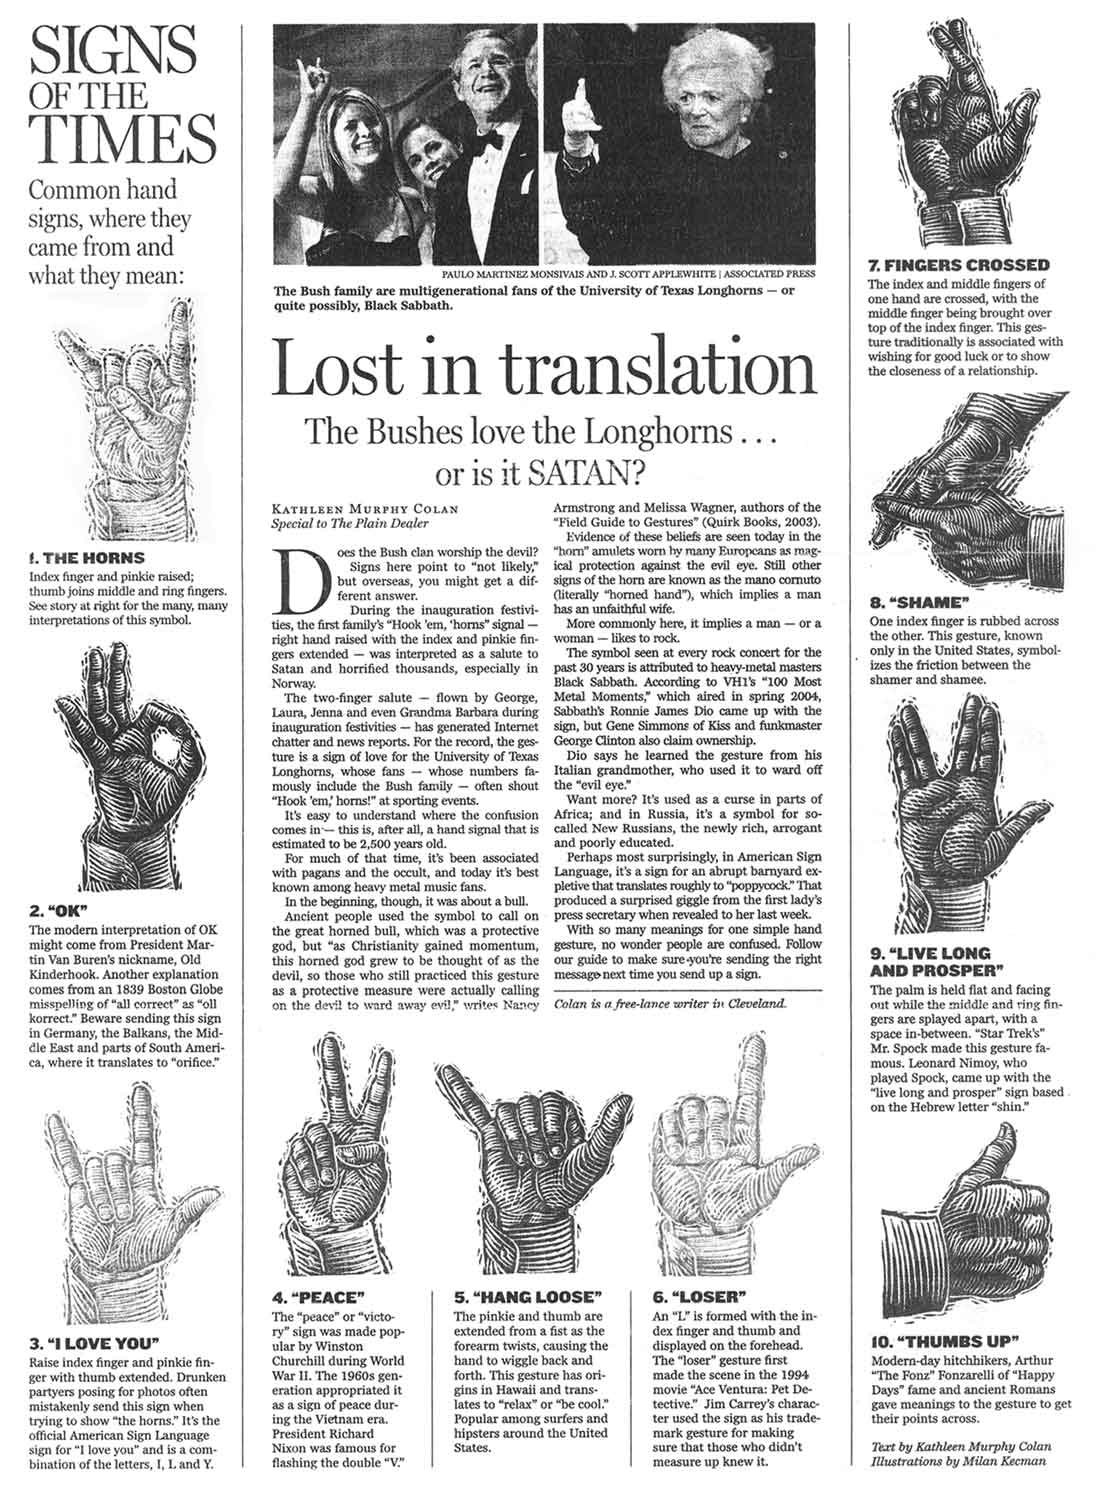 ... appeared to be the devil's hand sign.(Click image for readable text